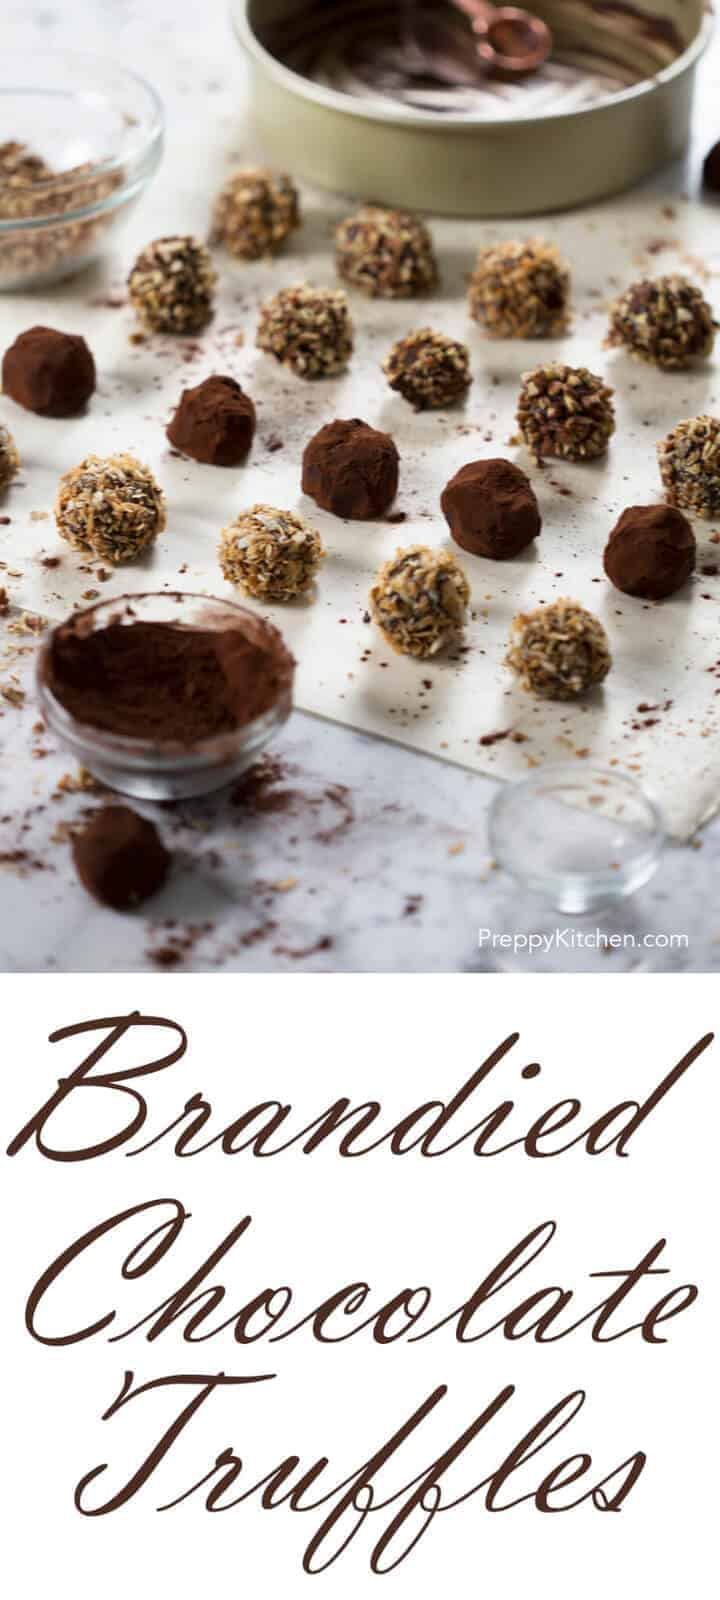 Delicious no bake chocolate truffles with a hint of brandy, rolled in toasted coconut, Cocoa powder and toasted pecans.